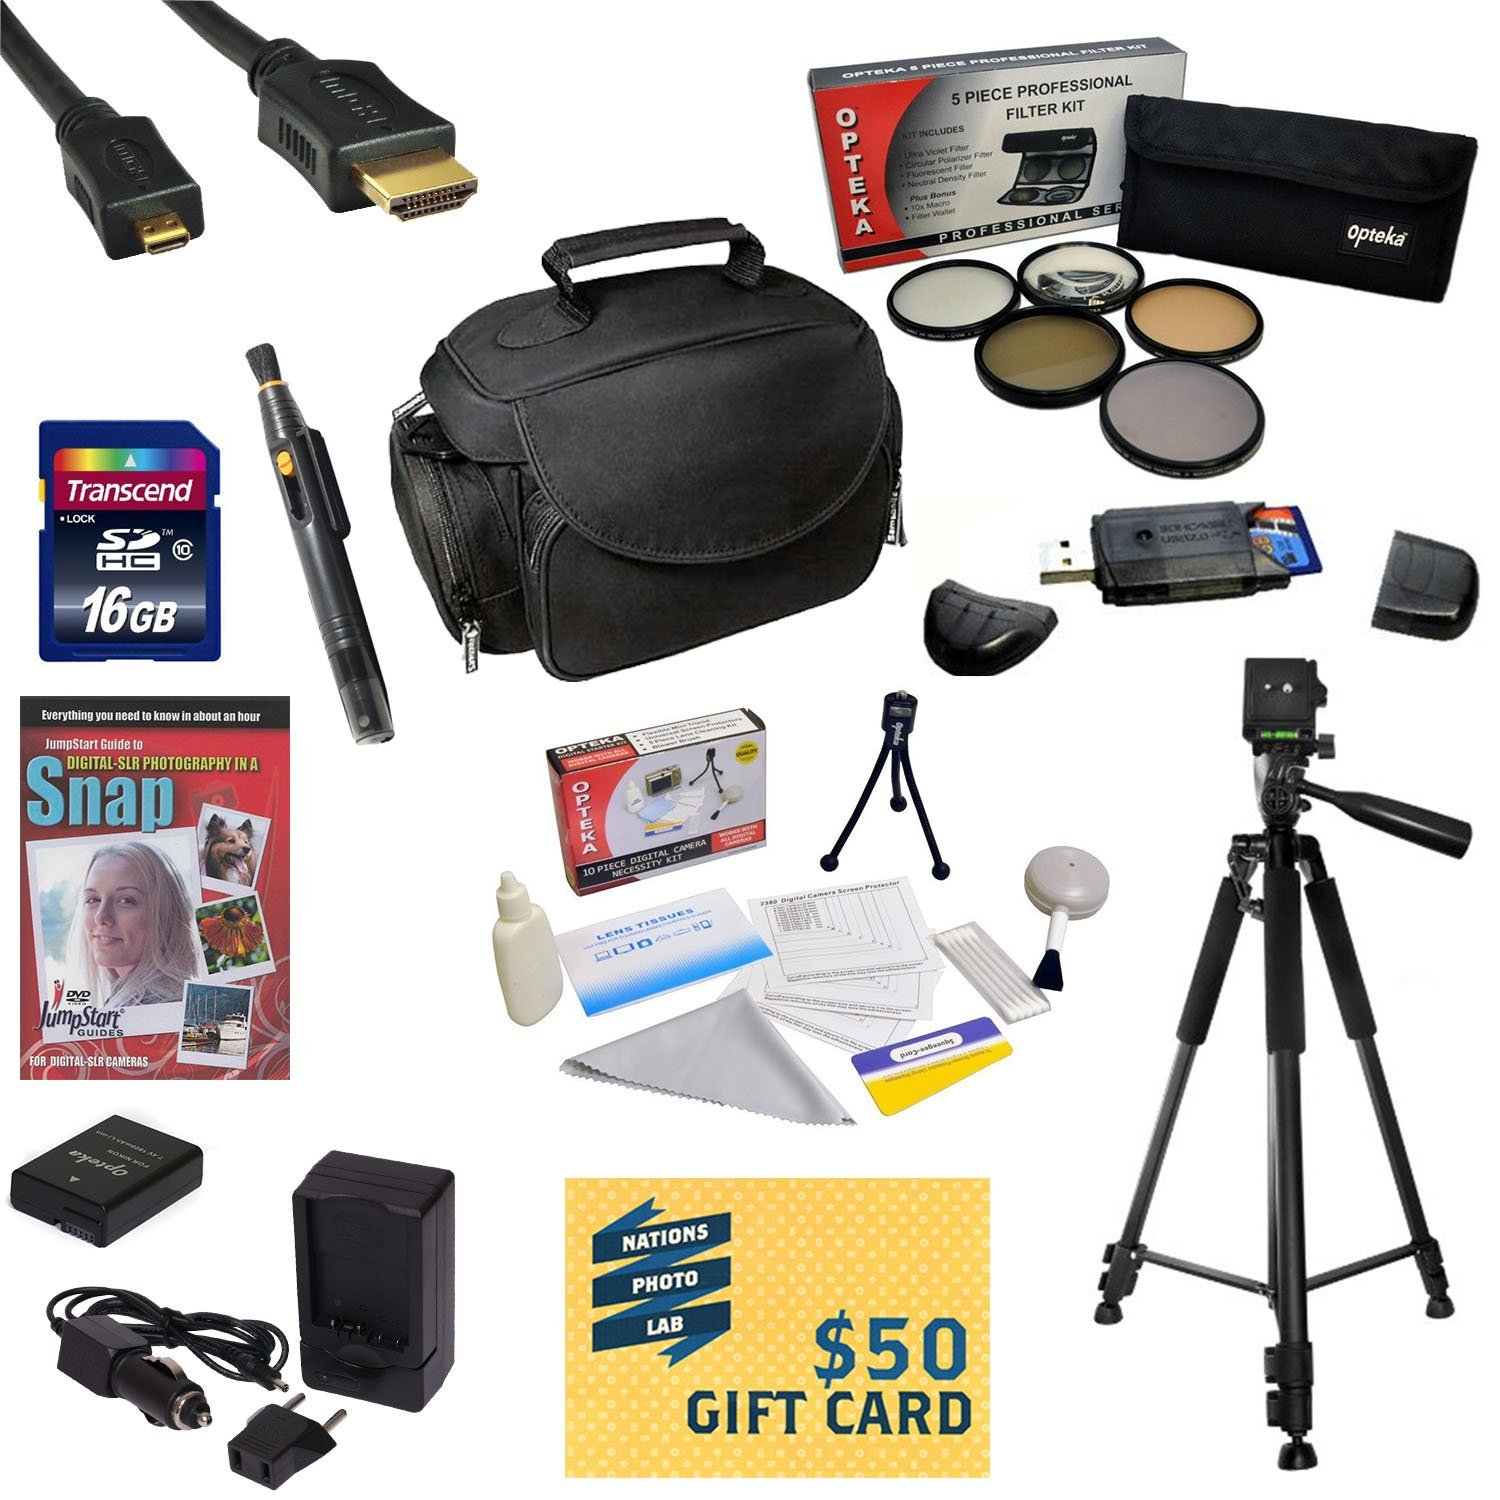 Best Value Kit for Nikon D50,D70, D80, D90 with 16GB SDHC Card, Extra Battery, Charger, 5 PC Filter Kit, HDMI Cable, Case, Tripod, Lens Pen, Cleaning Kit, DSLR DVD, $50 Gift Card, More